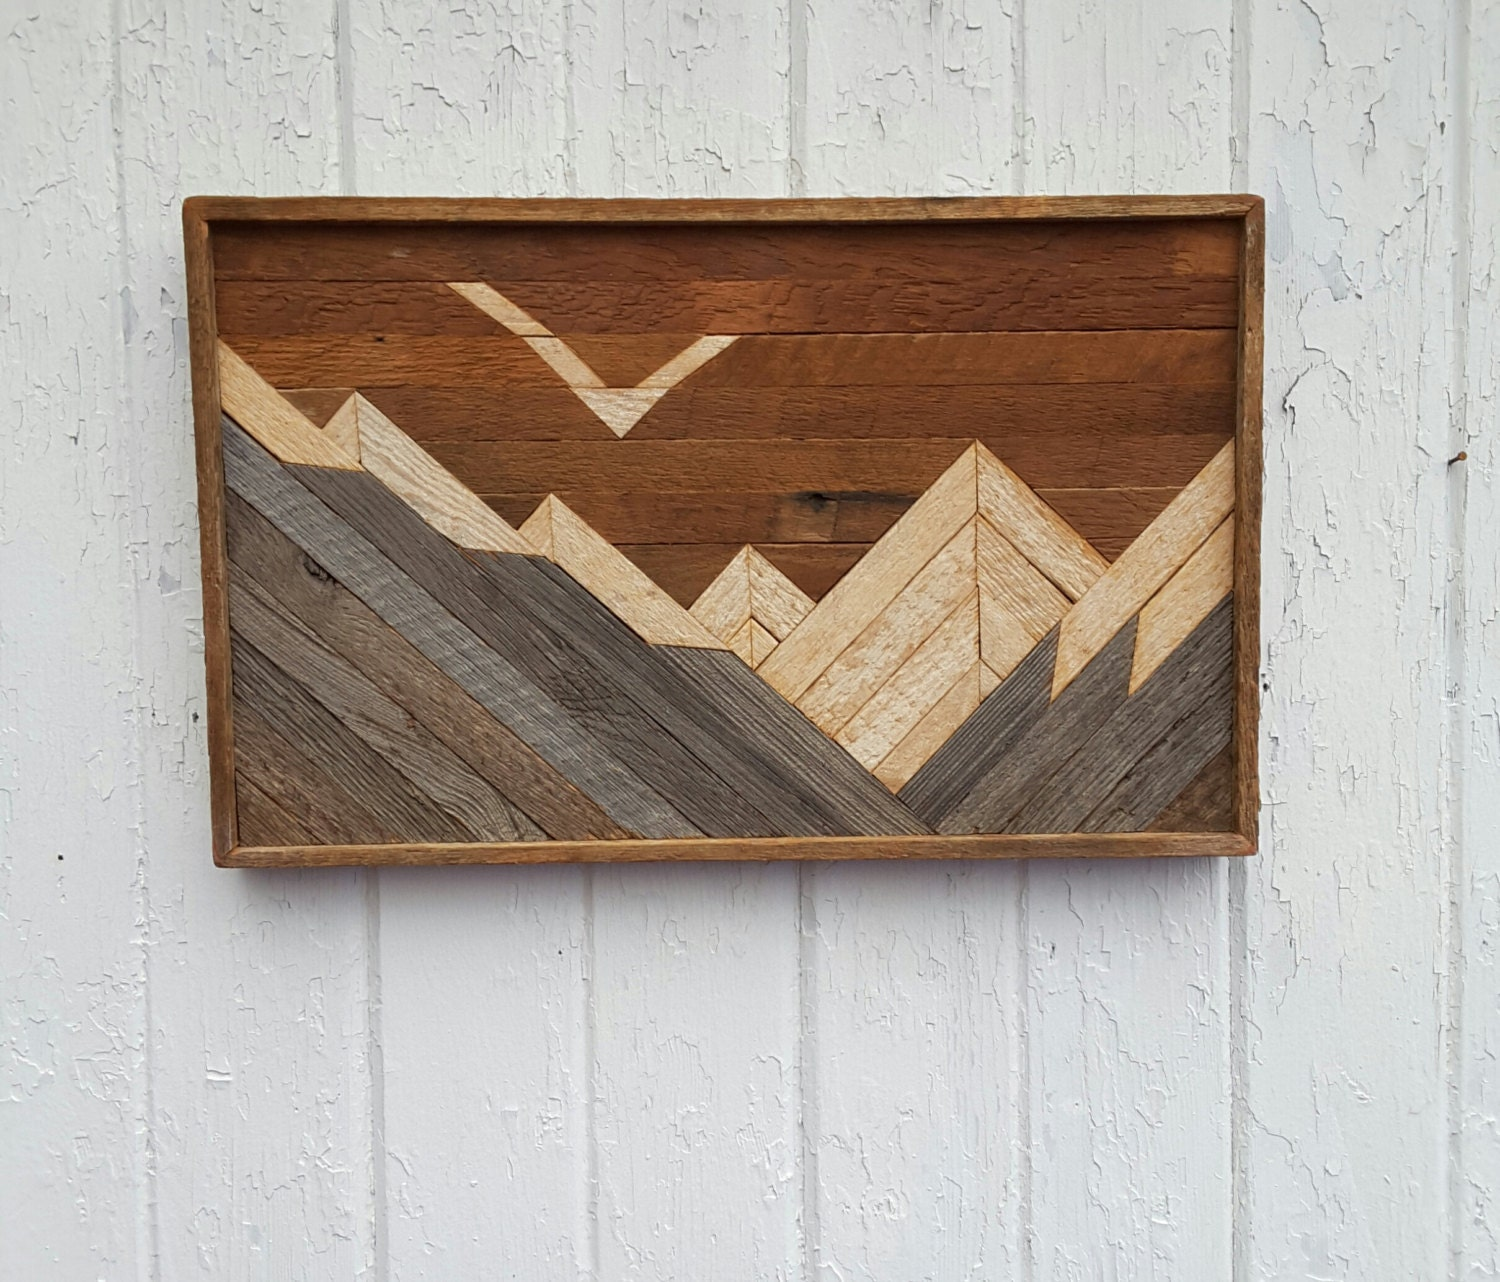 Reclaimed wood wall art mountains decor lath